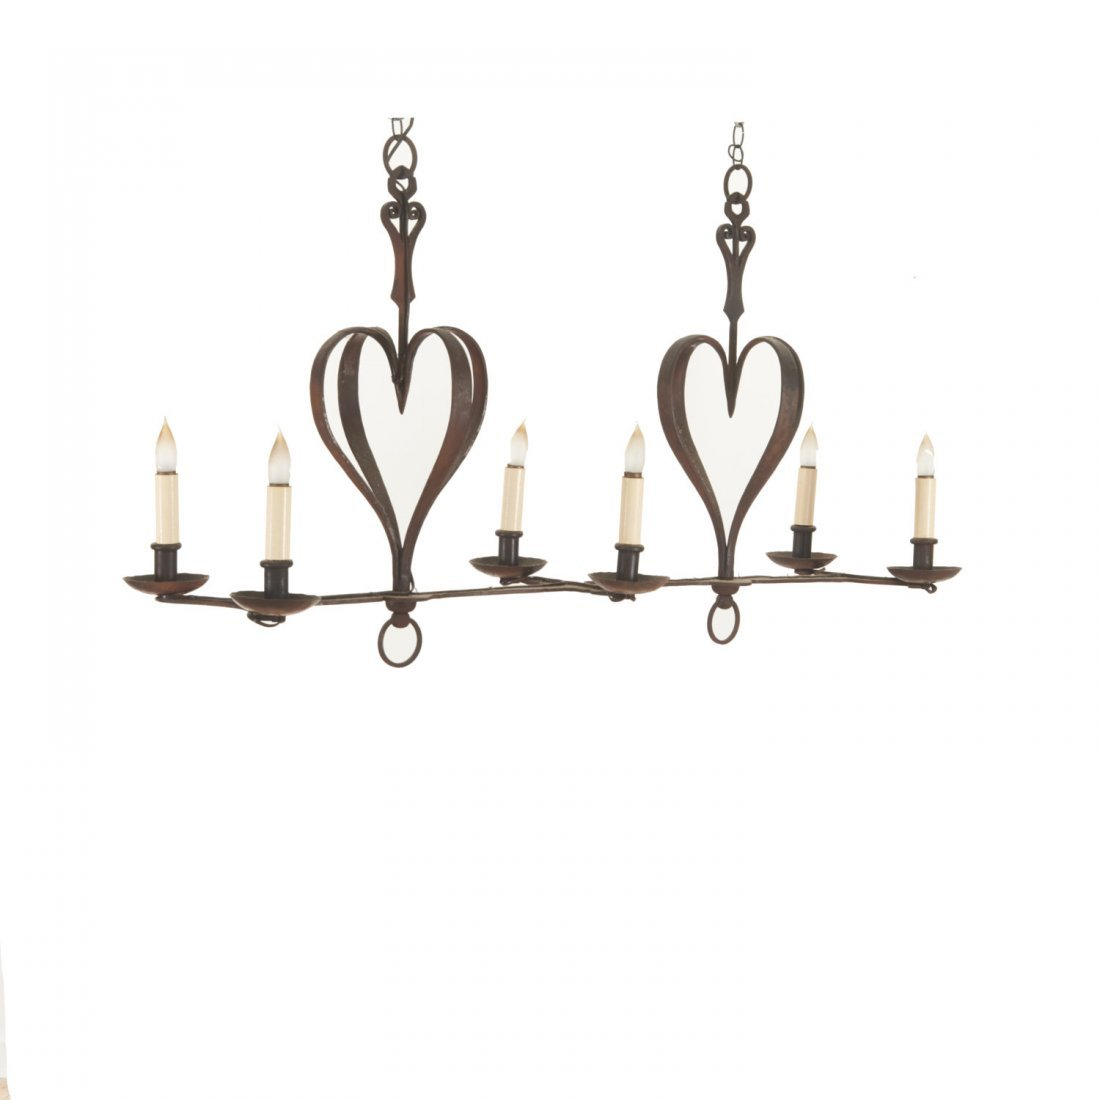 French Provincial style wrought iron chandelier - 4